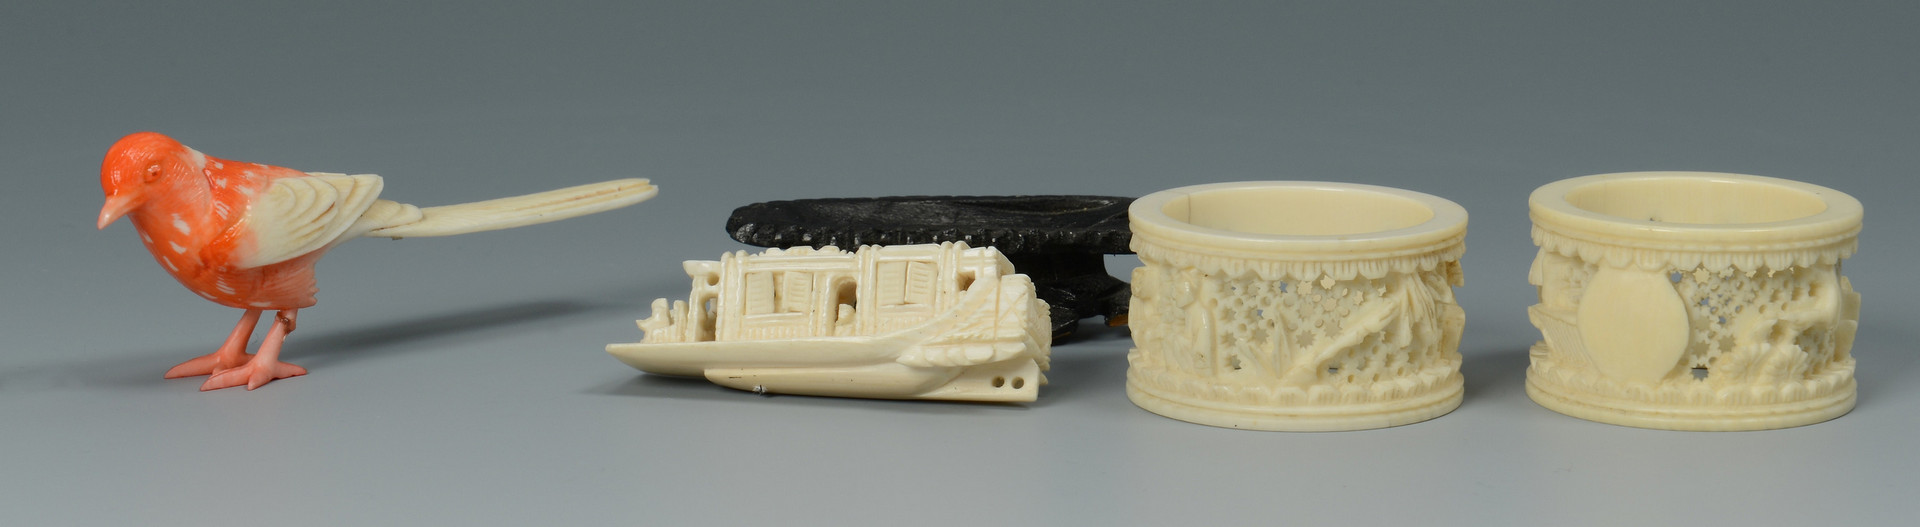 Lot 738: Group of Chinese Jewelry, Bone & Other